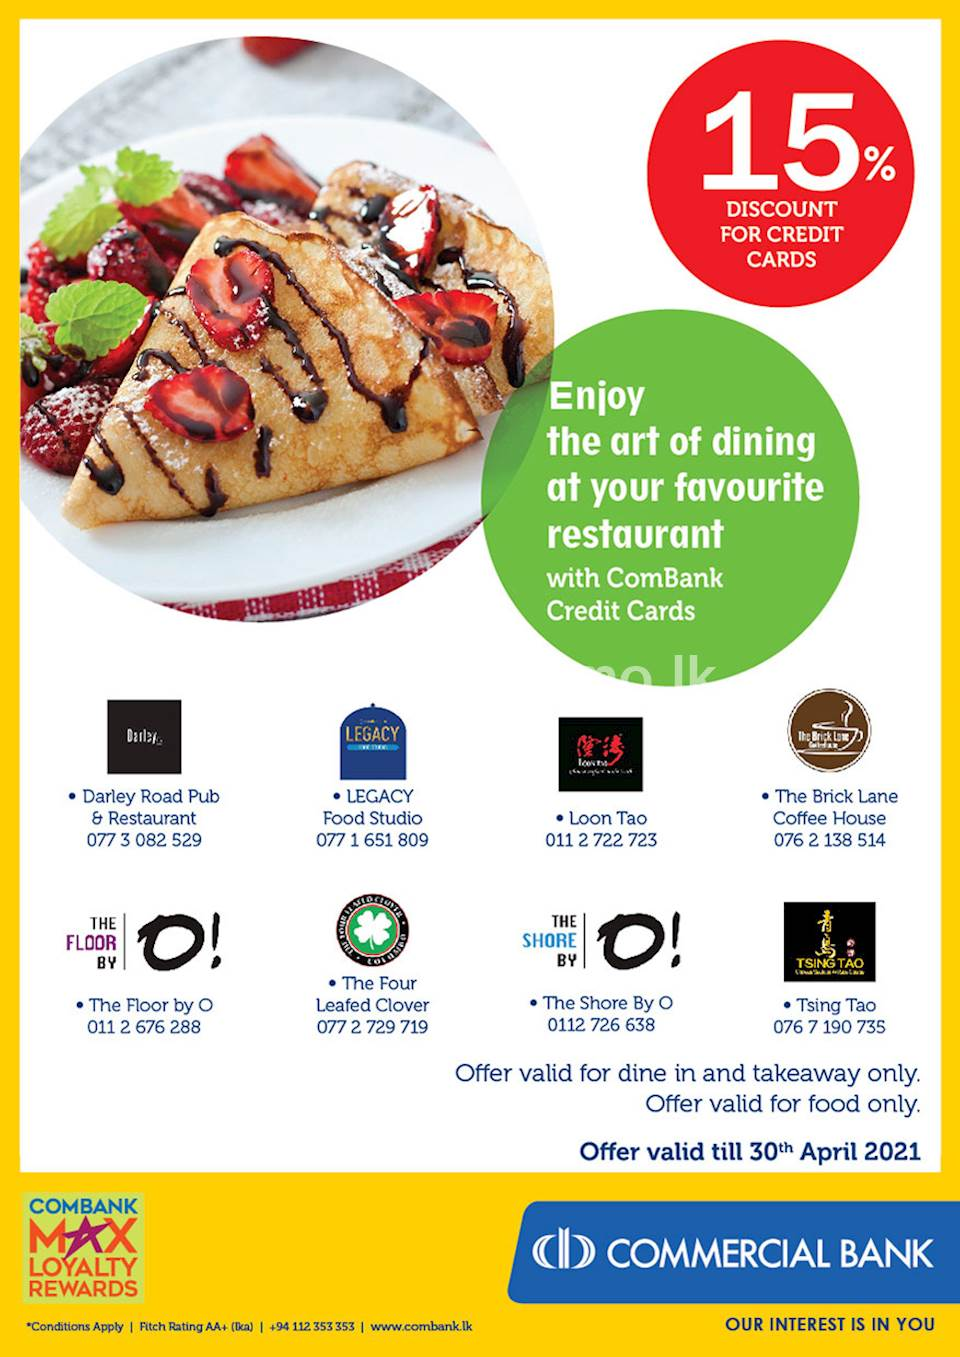 Enjoy the art of dining at your favourite restaurant with ComBank Credit Cards